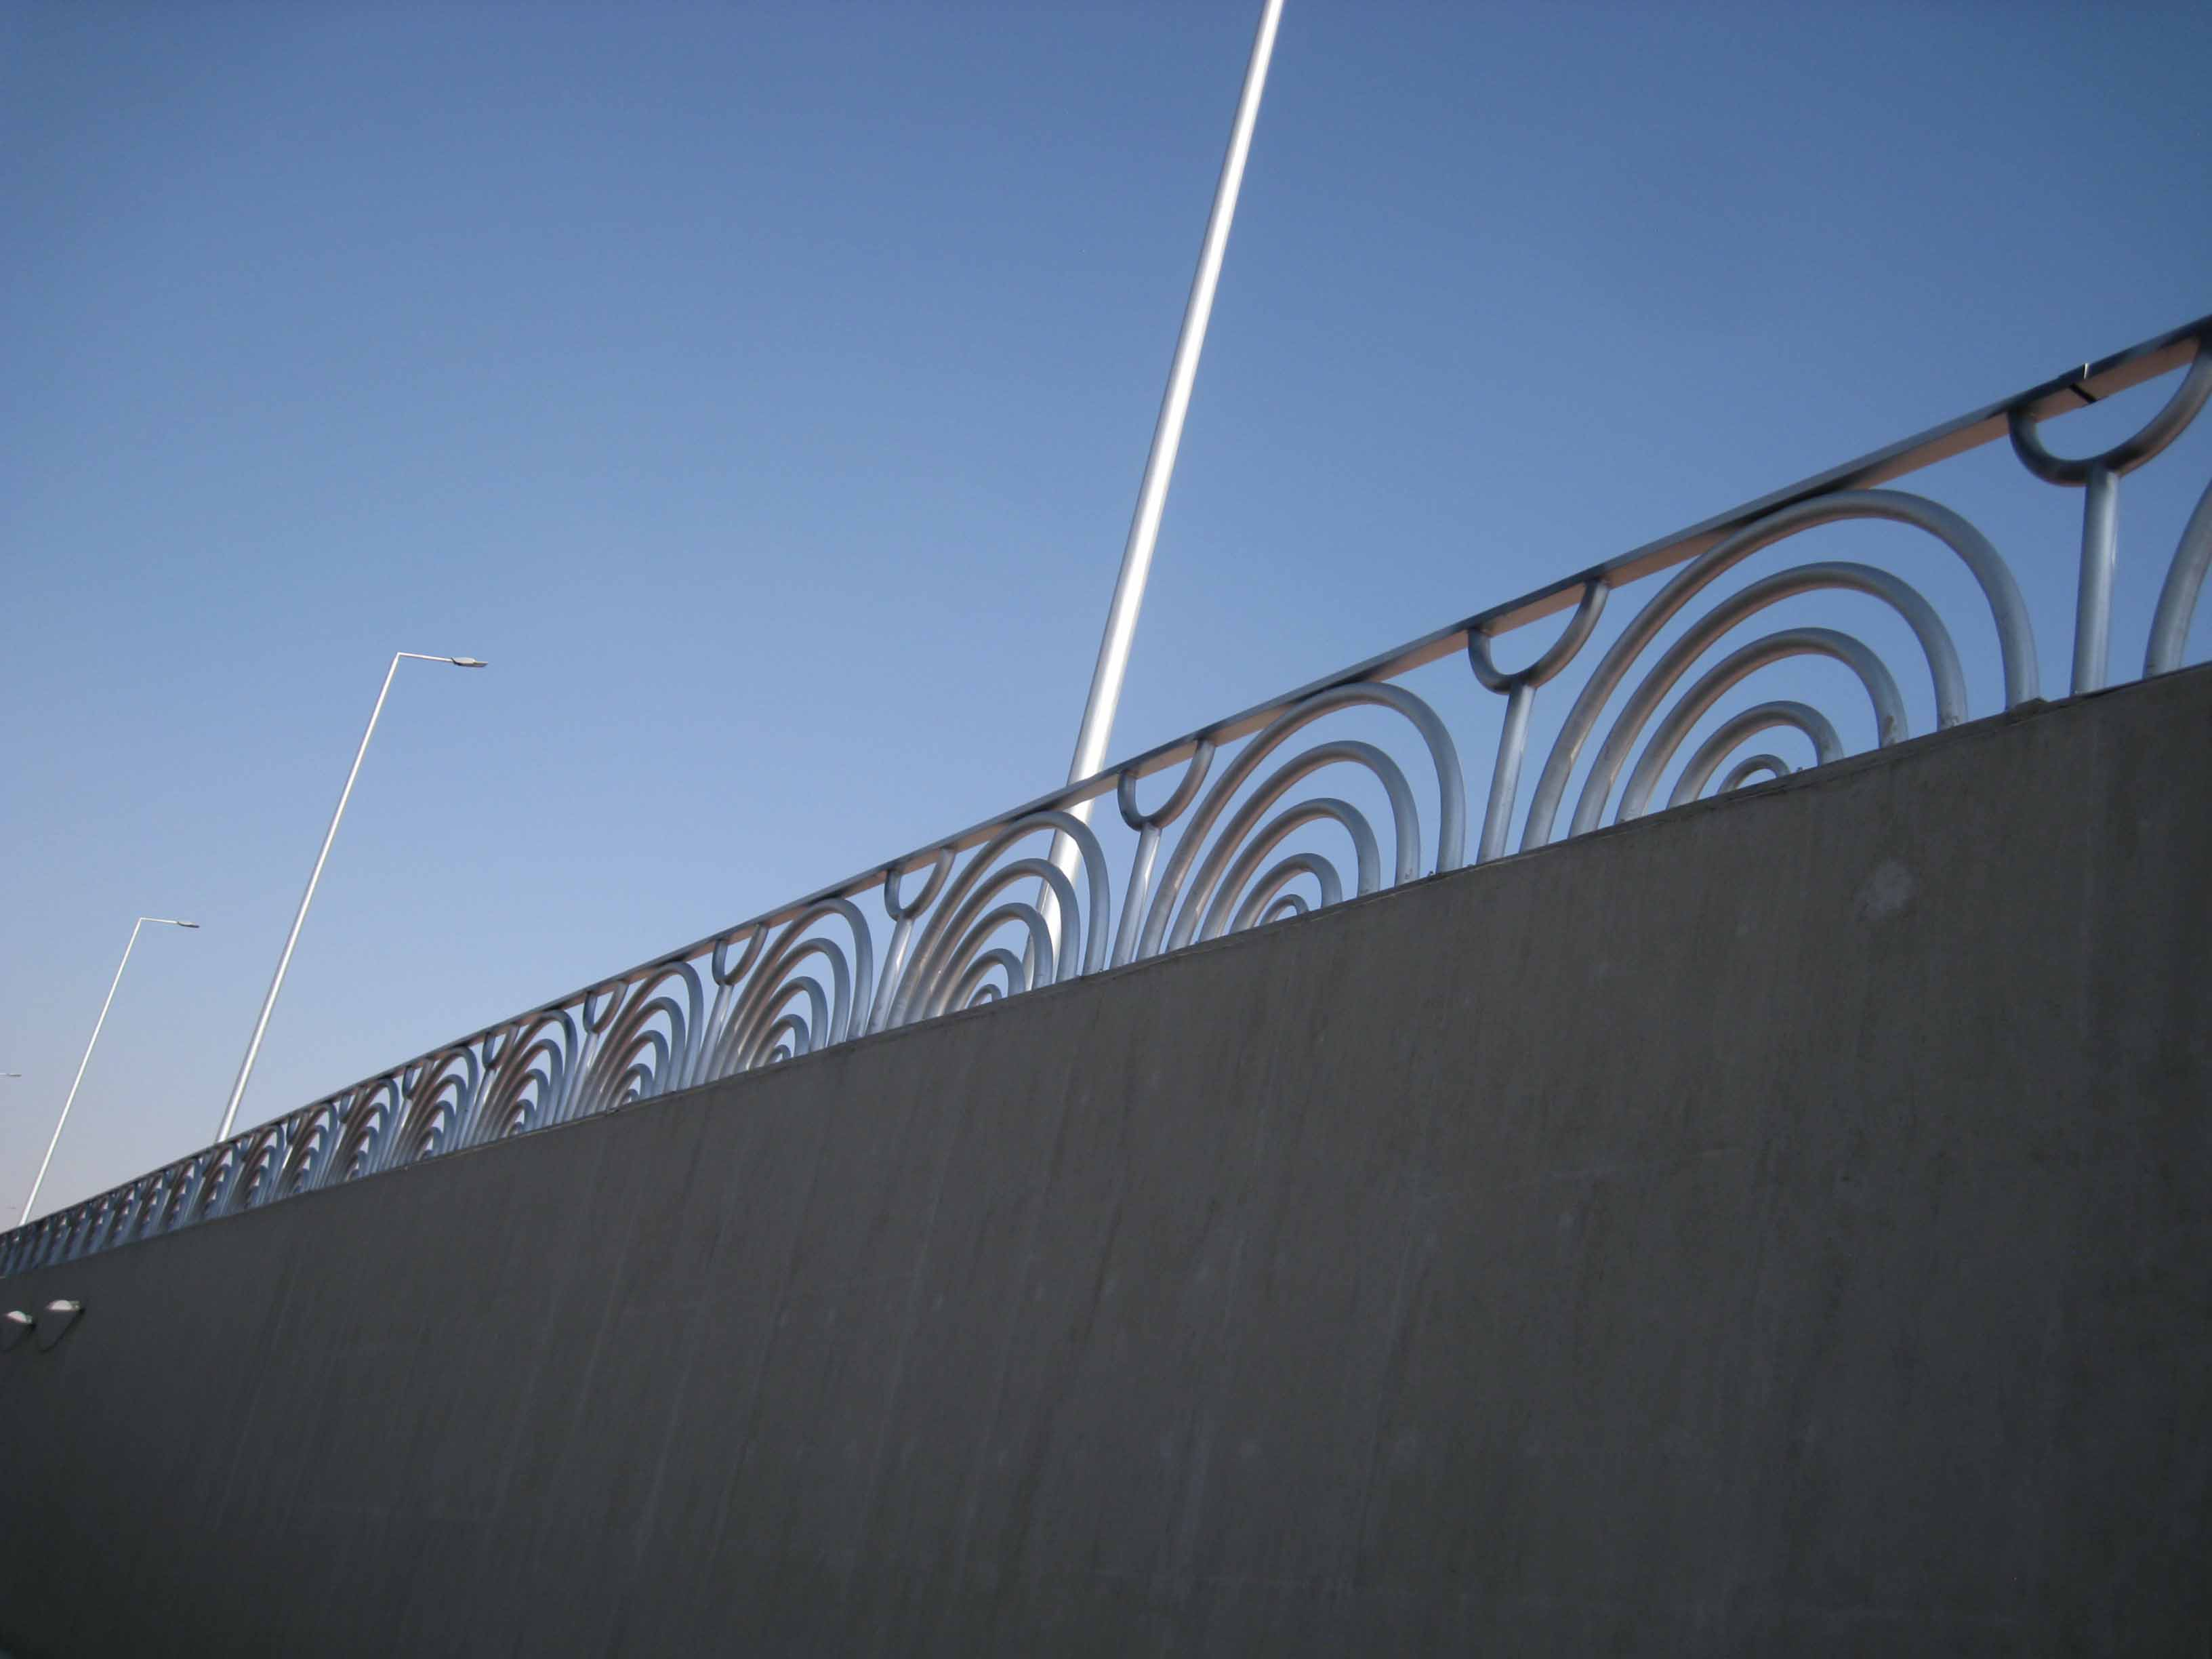 Handrail of Downtown tunnel project (18)